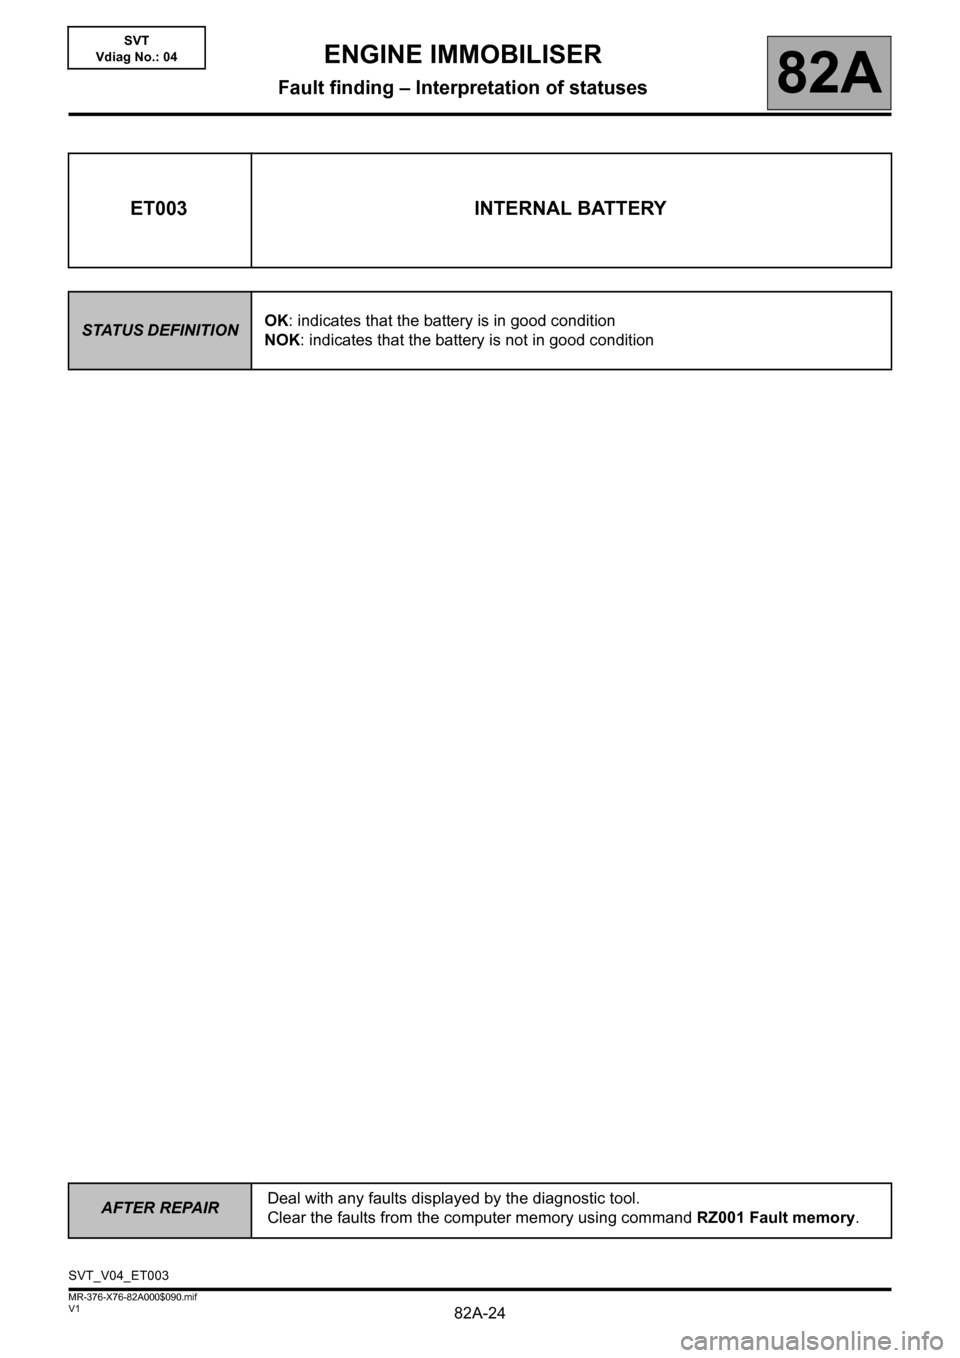 RENAULT KANGOO 2013 X61 / 2.G Engine Immobiliser Owners Manual 82A-24 AFTER REPAIRDeal with any faults displayed by the diagnostic tool. Clear the faults from the computer memory using command RZ001 Fault memory. V1 MR-376-X76-82A000$090.mif ENGINE IMMOBILISER Fa